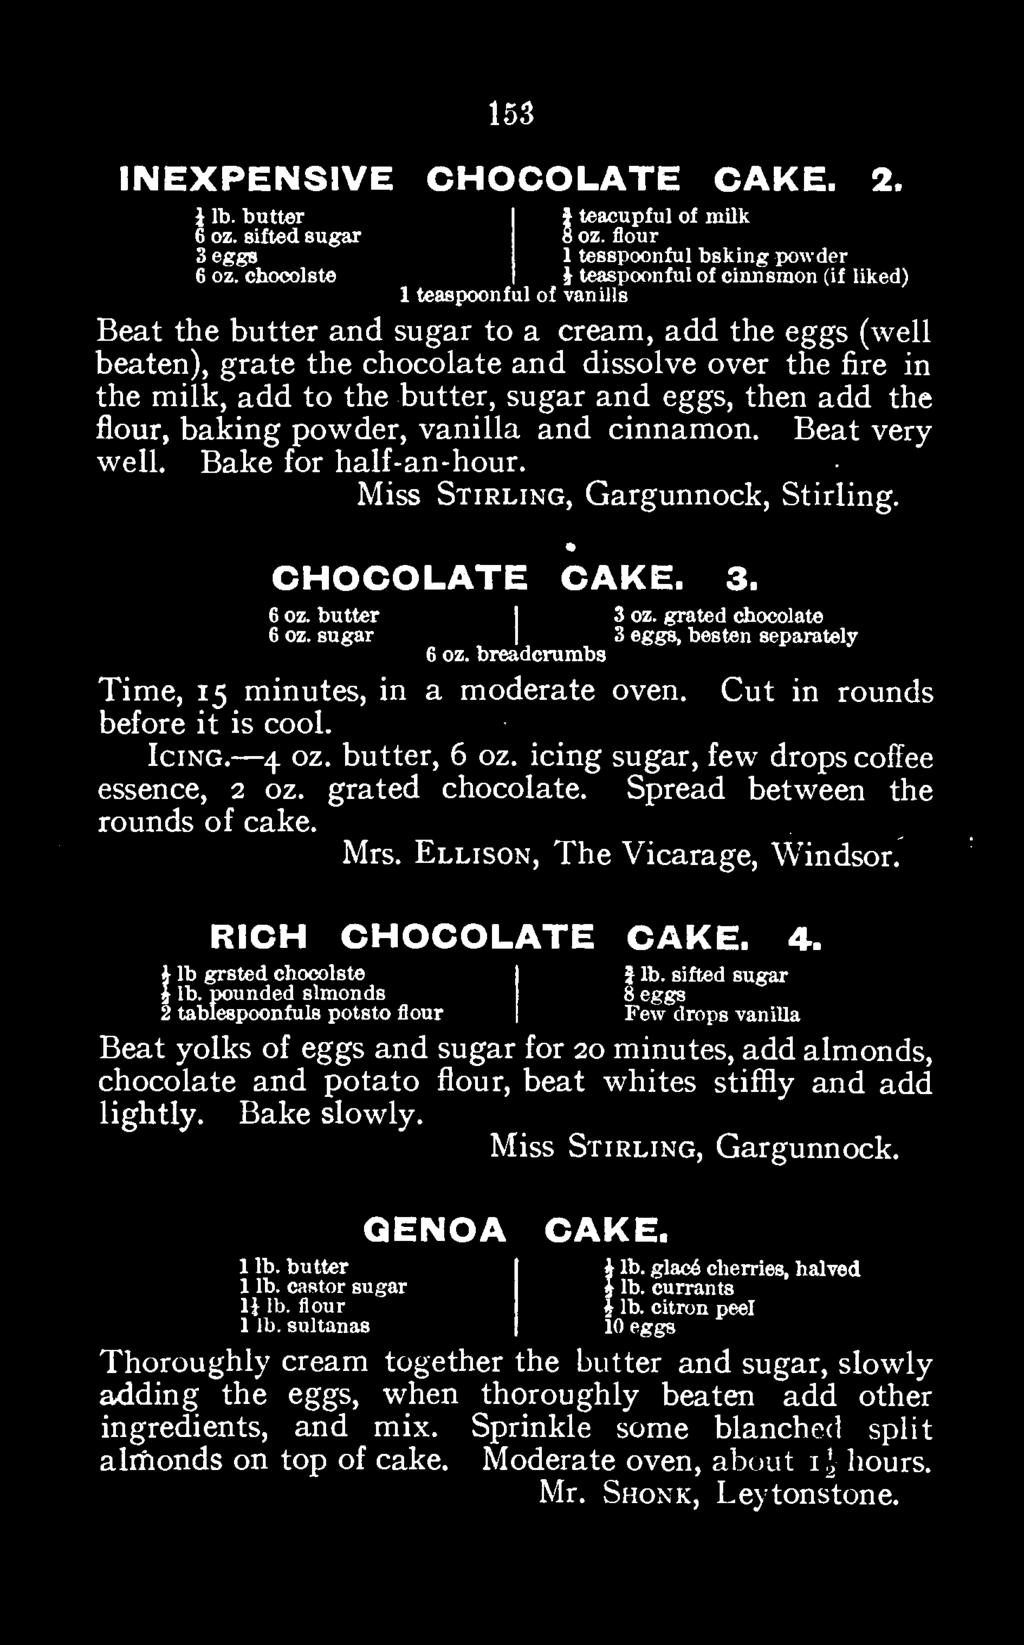 butter, 6 oz. icing sugar, few drops coffee essence, 2 oz. grated chocolate. Spread between the rounds of cake. Mrs. Ellison, The Vicarage, Windsor. RICH CHOCOLATE CAKE. 4. 1 J lb.